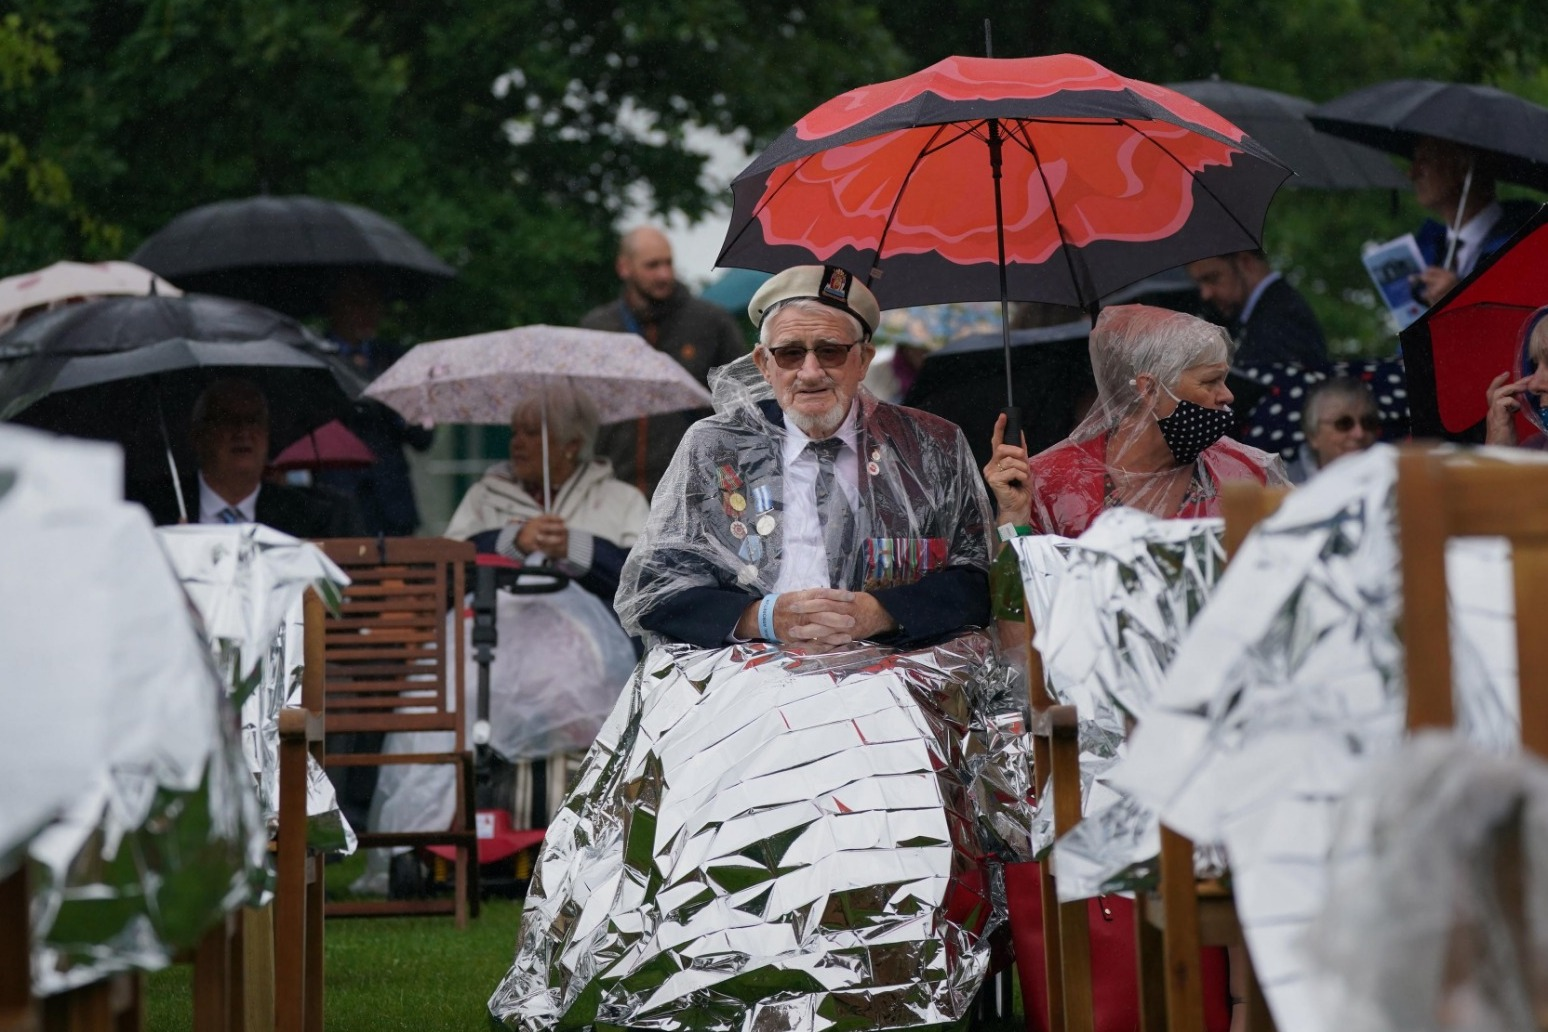 Normandy veterans gather to mark 77th D-Day anniversary and memorial opening